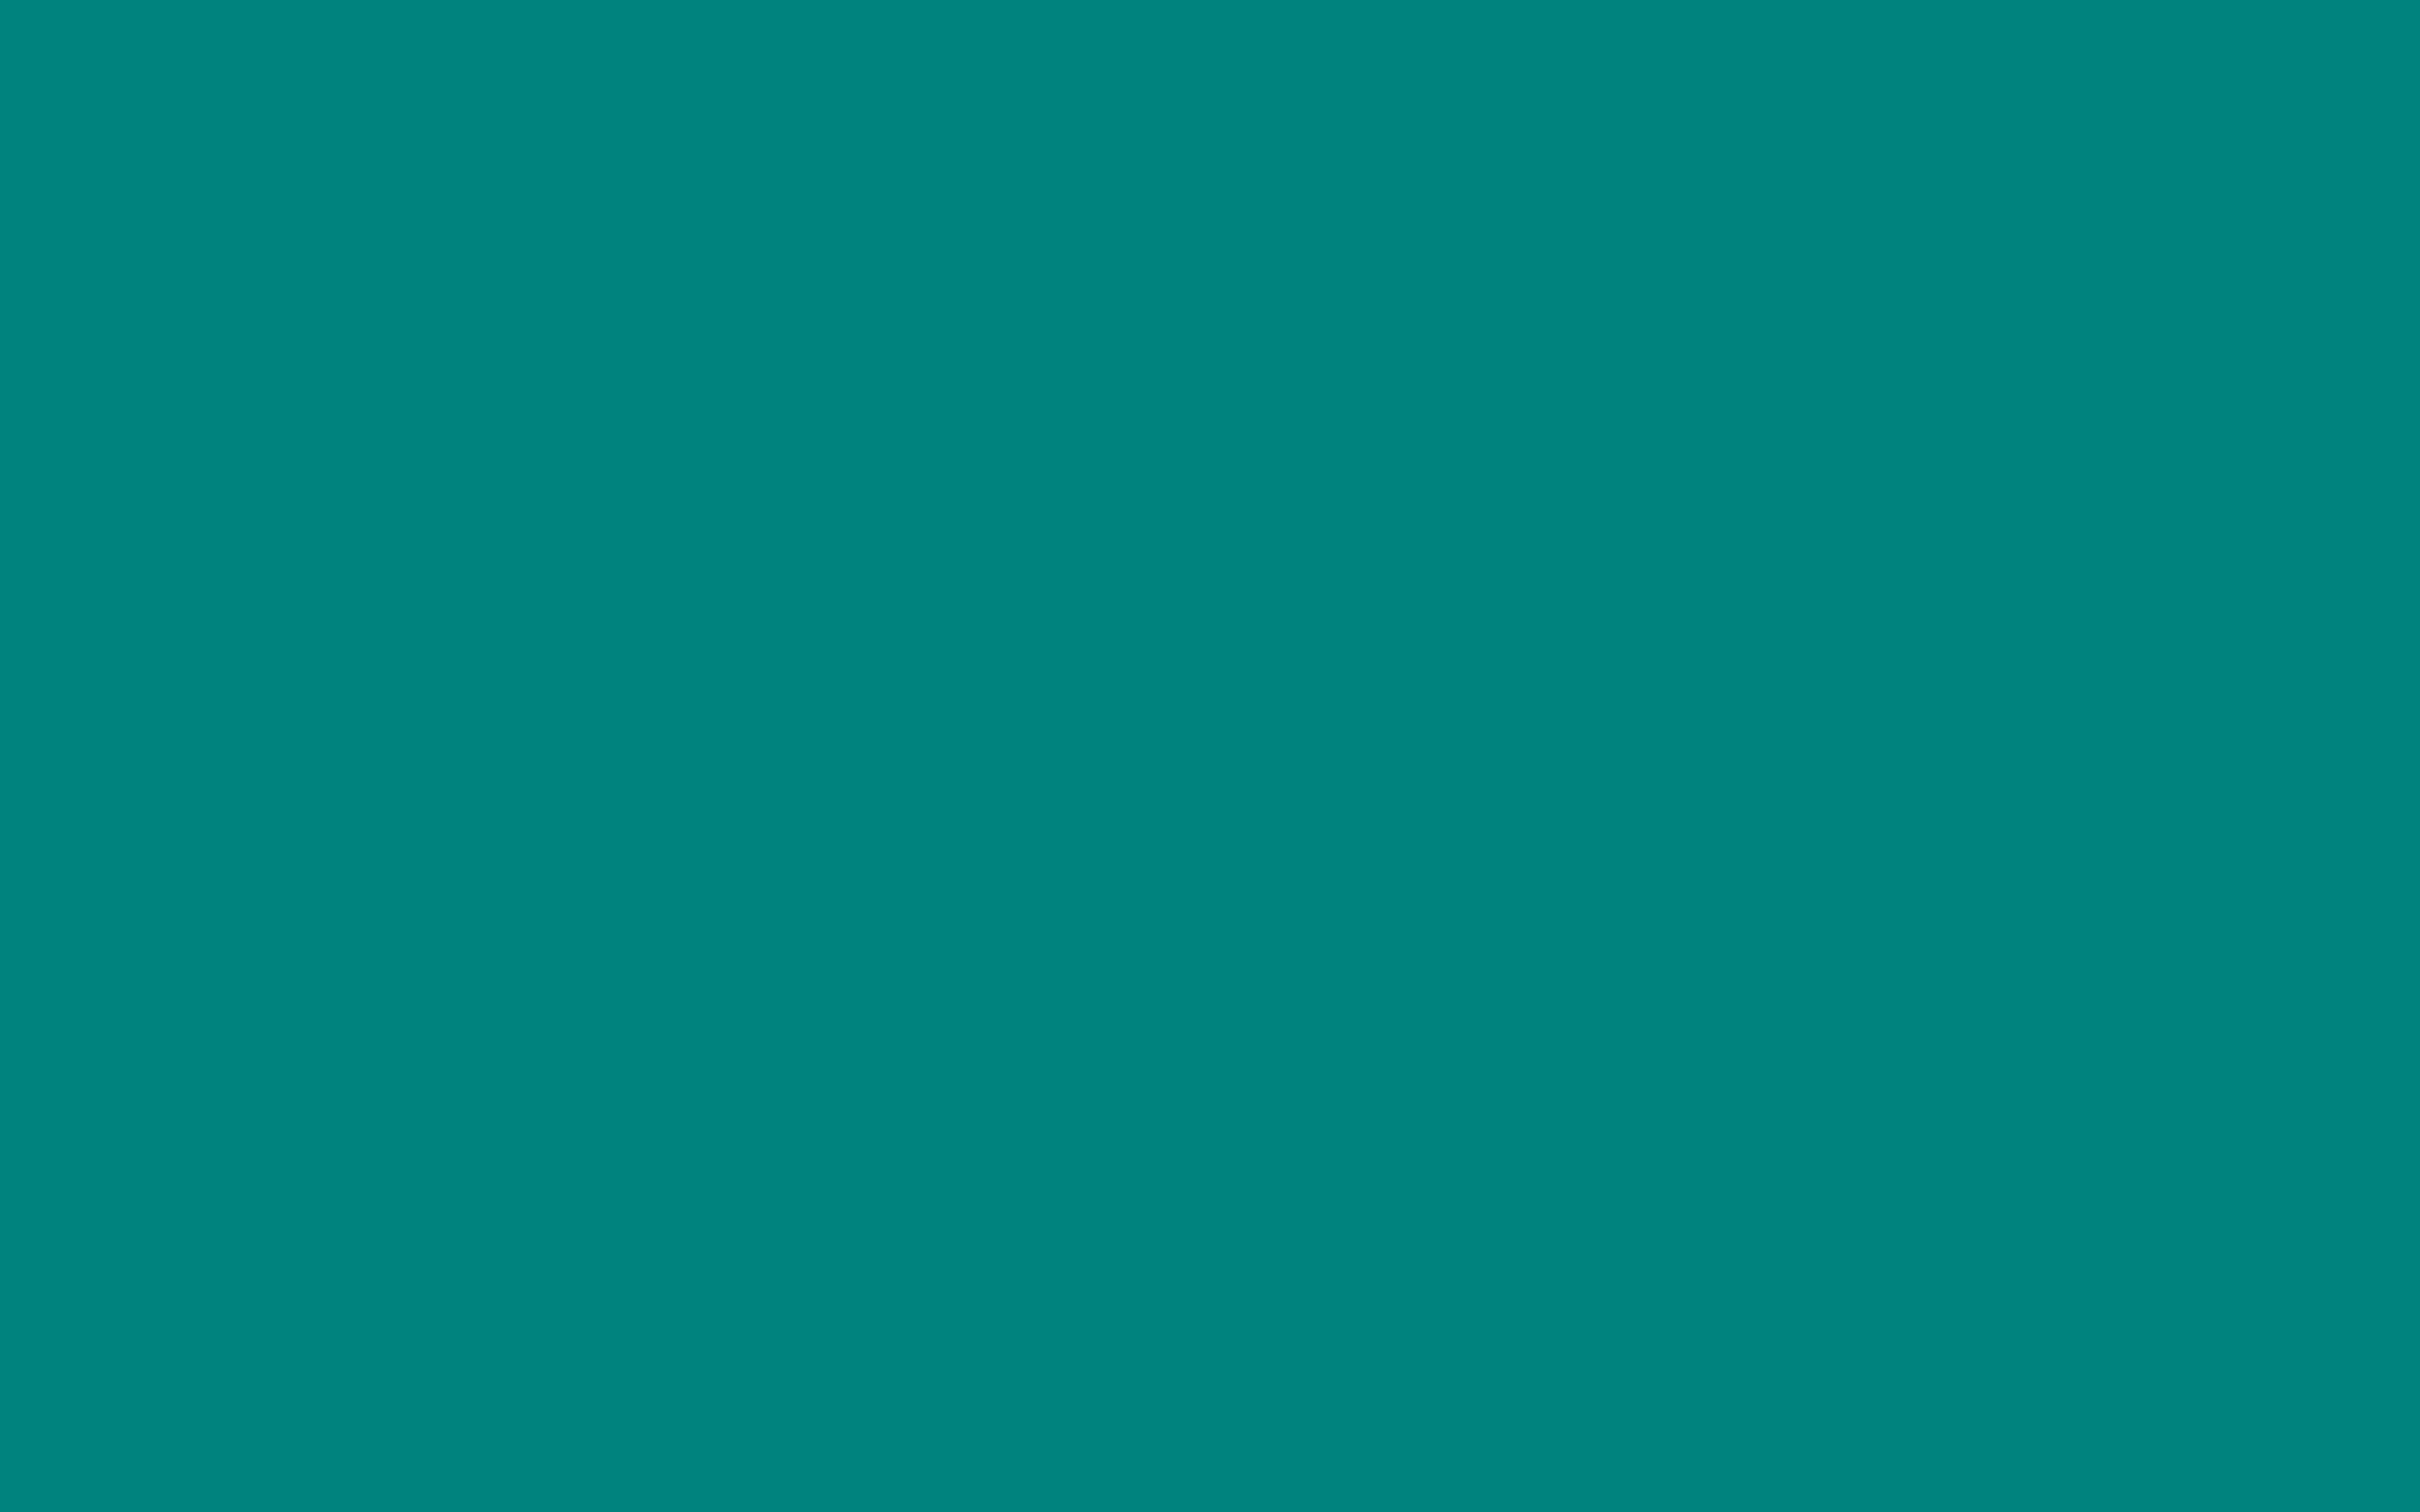 Green solid color background view and download the below background 2880x1800